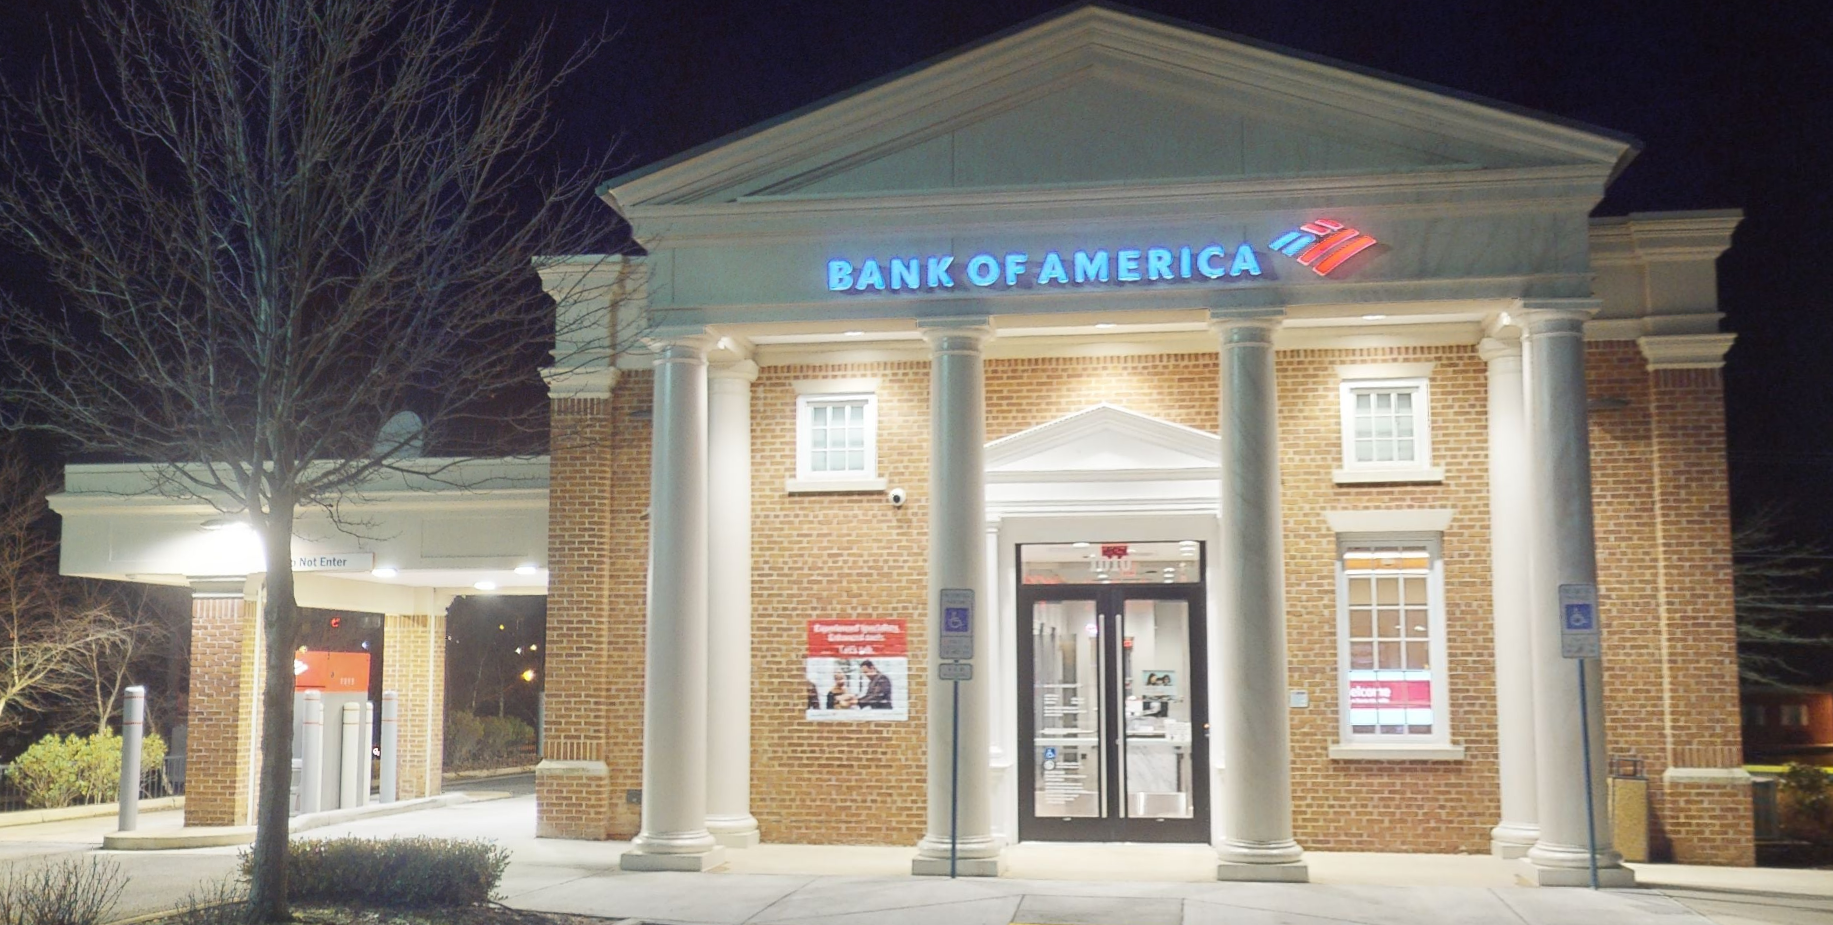 Bank of America financial center with drive-thru ATM | 1010 E Main St, Purcellville, VA 20132